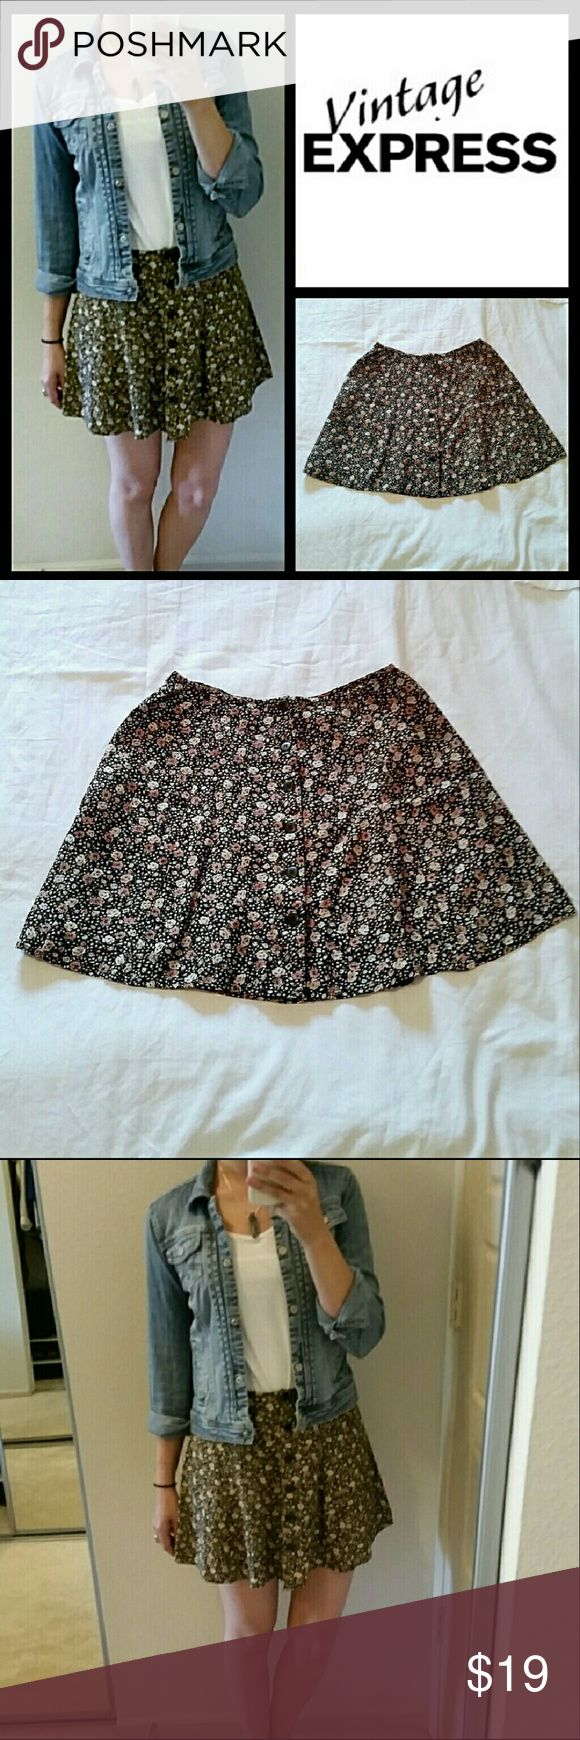 Vintage floral skirt Beautiful black floral button up skirt from Express. Like new condition! This quality cotton skirt is vintage express from the 90's and is so in style today! I purchased on etsy for $48 & unfortunately it's just not the right size for me. Near perfect condition. Photos do not do justice. Tag reads 7/8, reads TTS for a medium.  Check out my closet for more great items! Bundle discount available! Skirts